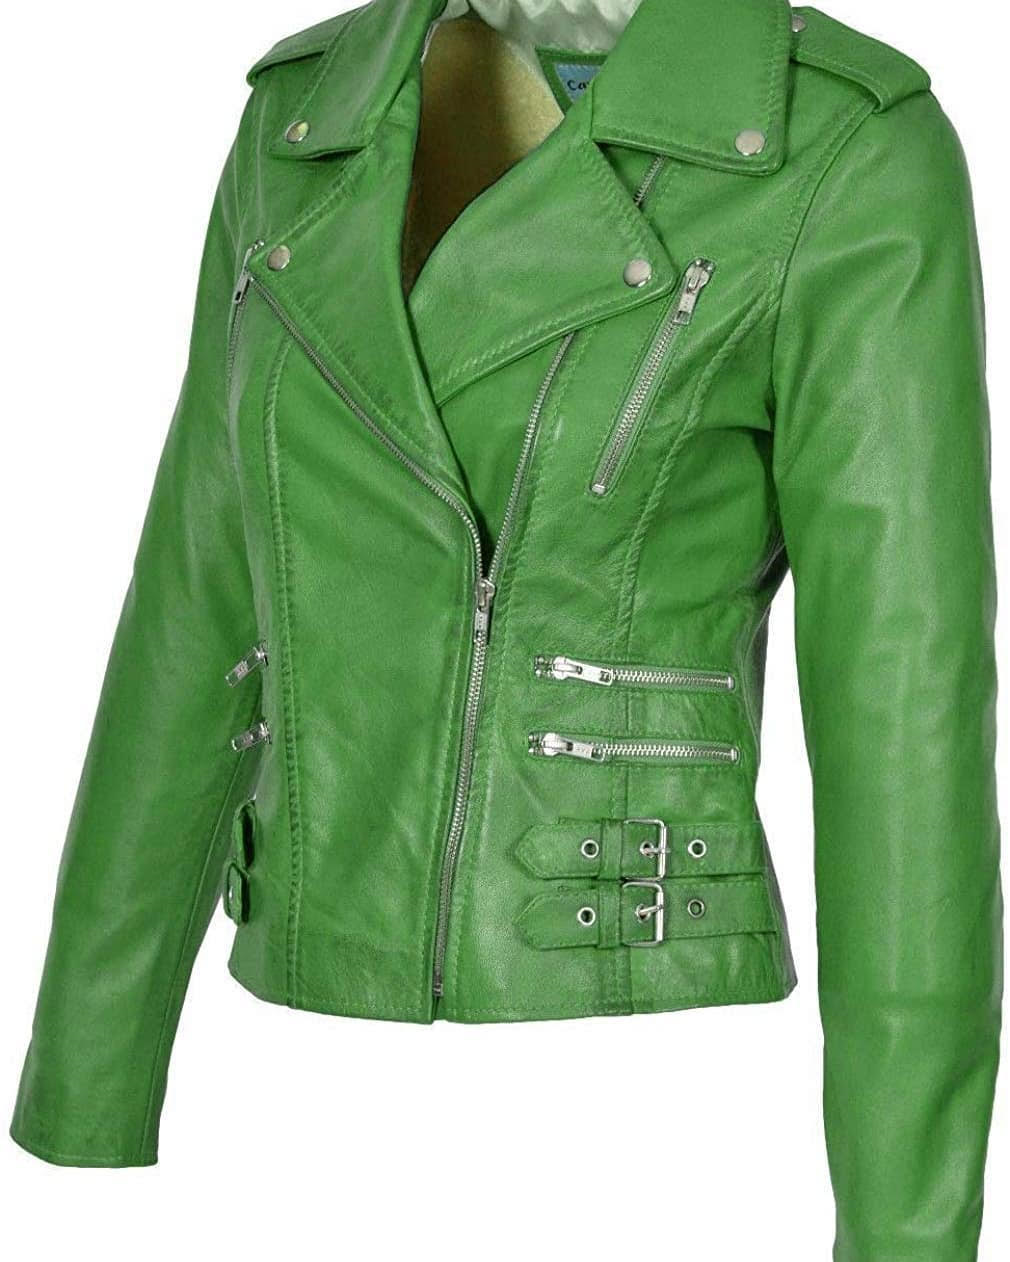 Pin By Bonanza Marketplace On Women S Leather Jackets Leather Jackets Women Leather Jacket Outfits Mens Casual Outfits [ 1262 x 1010 Pixel ]